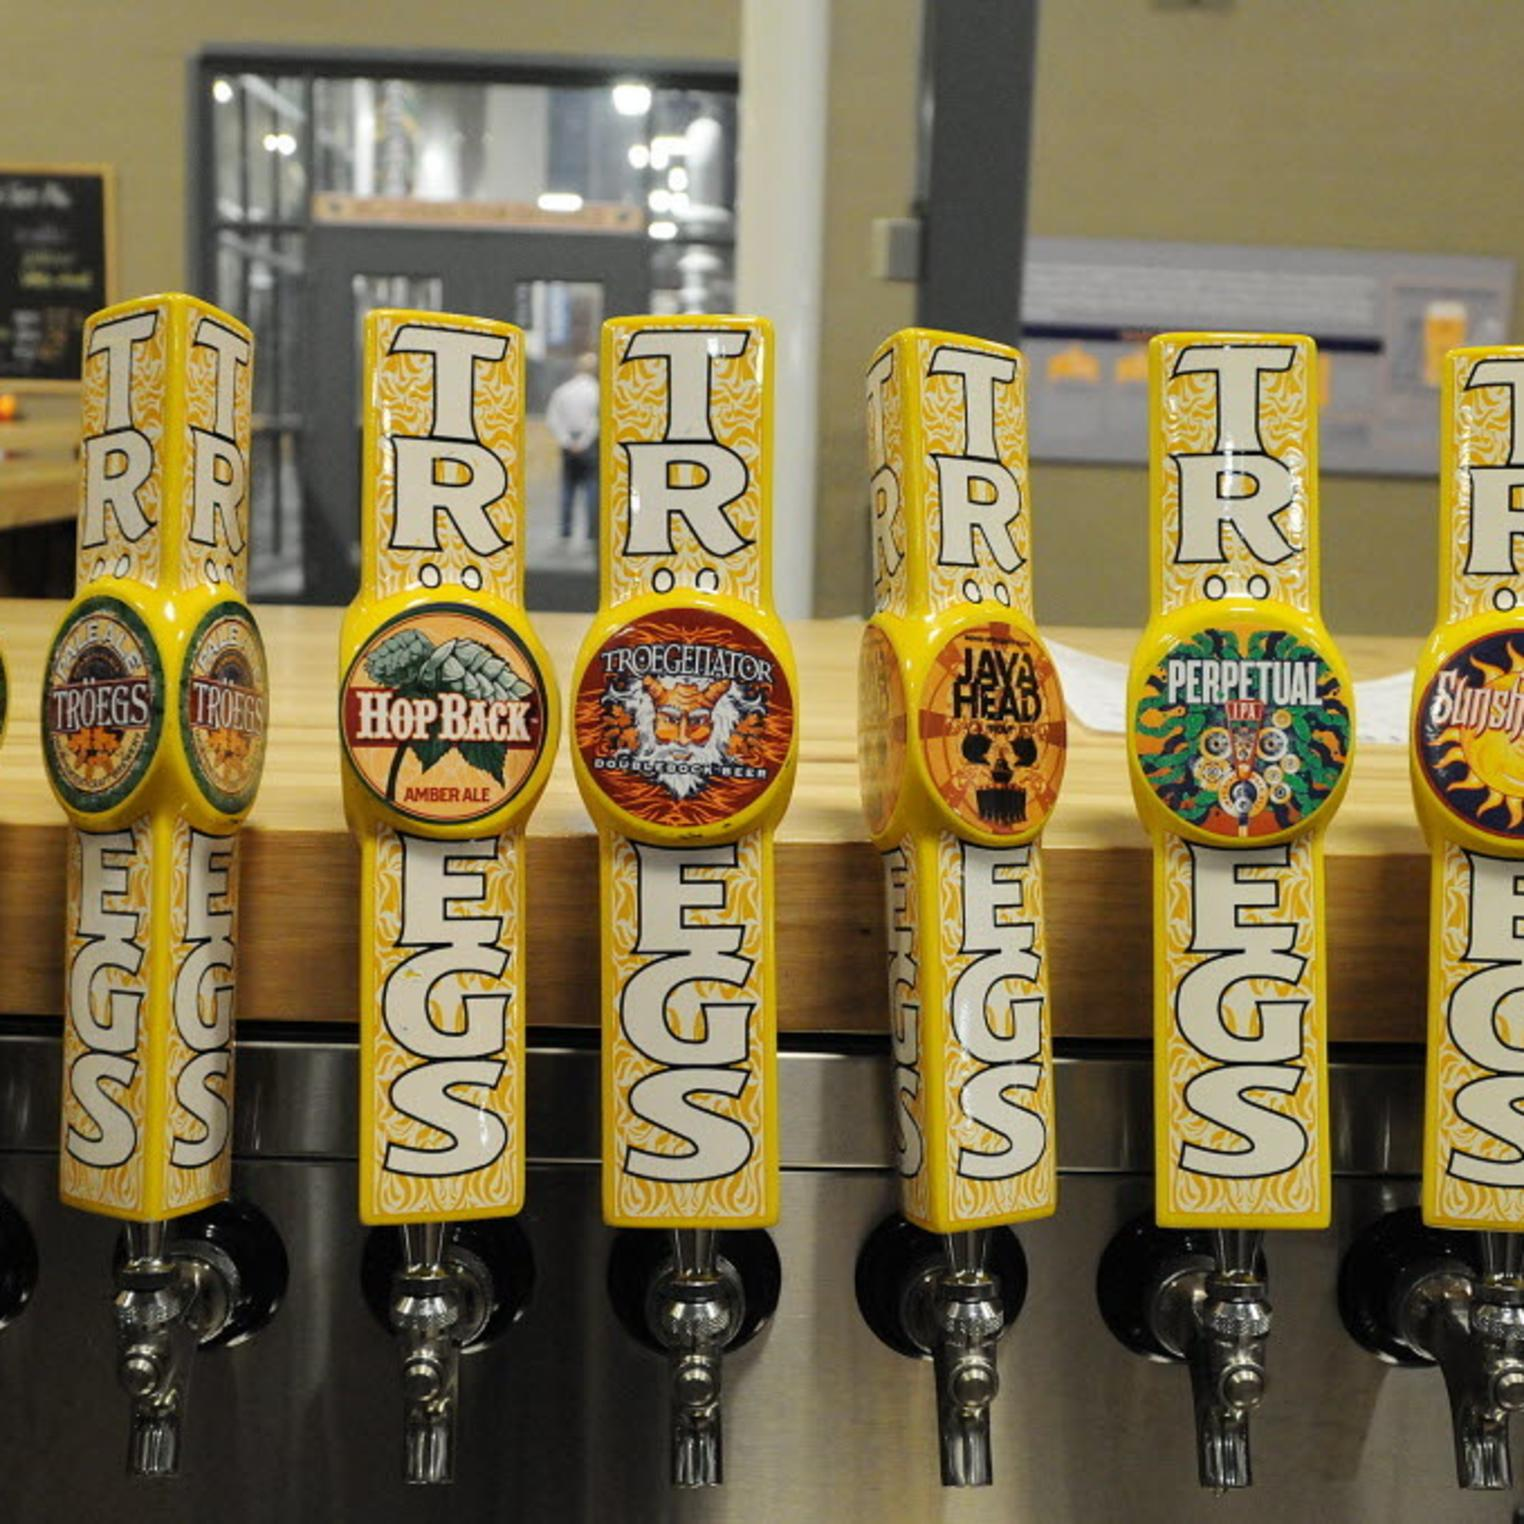 Troegs Brewing Company